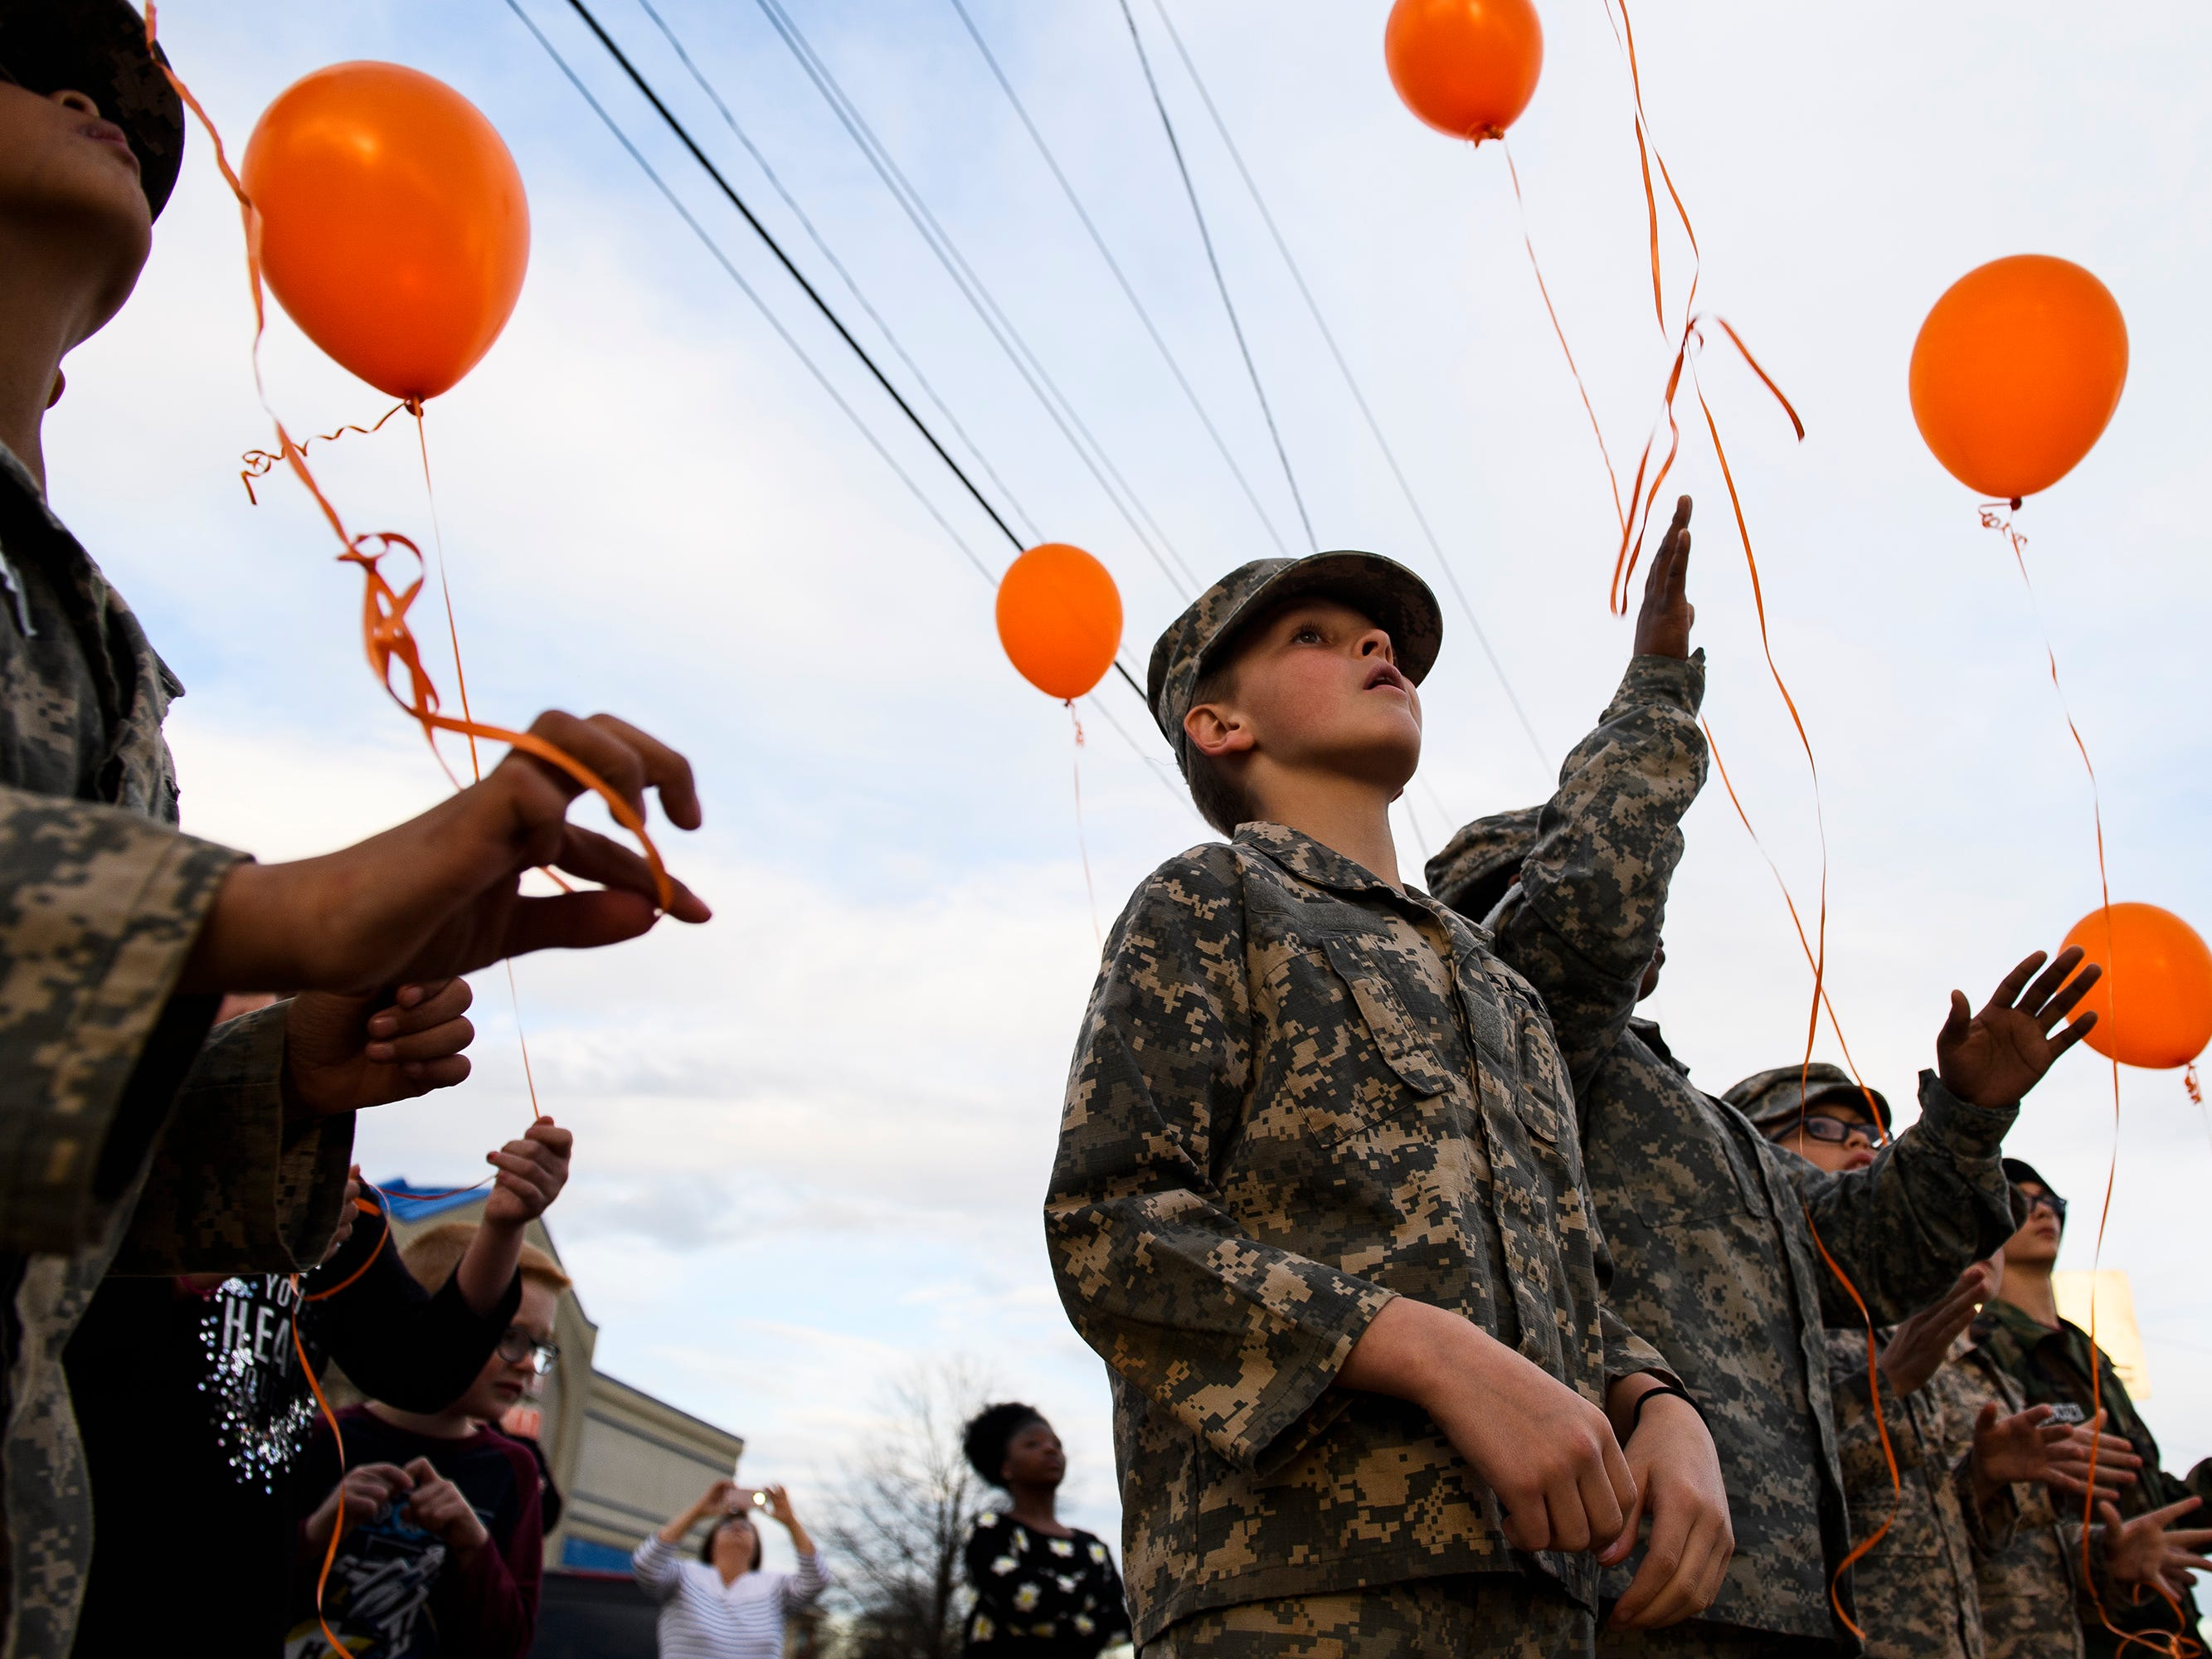 Landon Gore and other children from Strap Em' Up Boot Camp release balloons in the air in honor of Joshua Meeks on East Butler Road in Mauldin on Feb. 4, 2019.